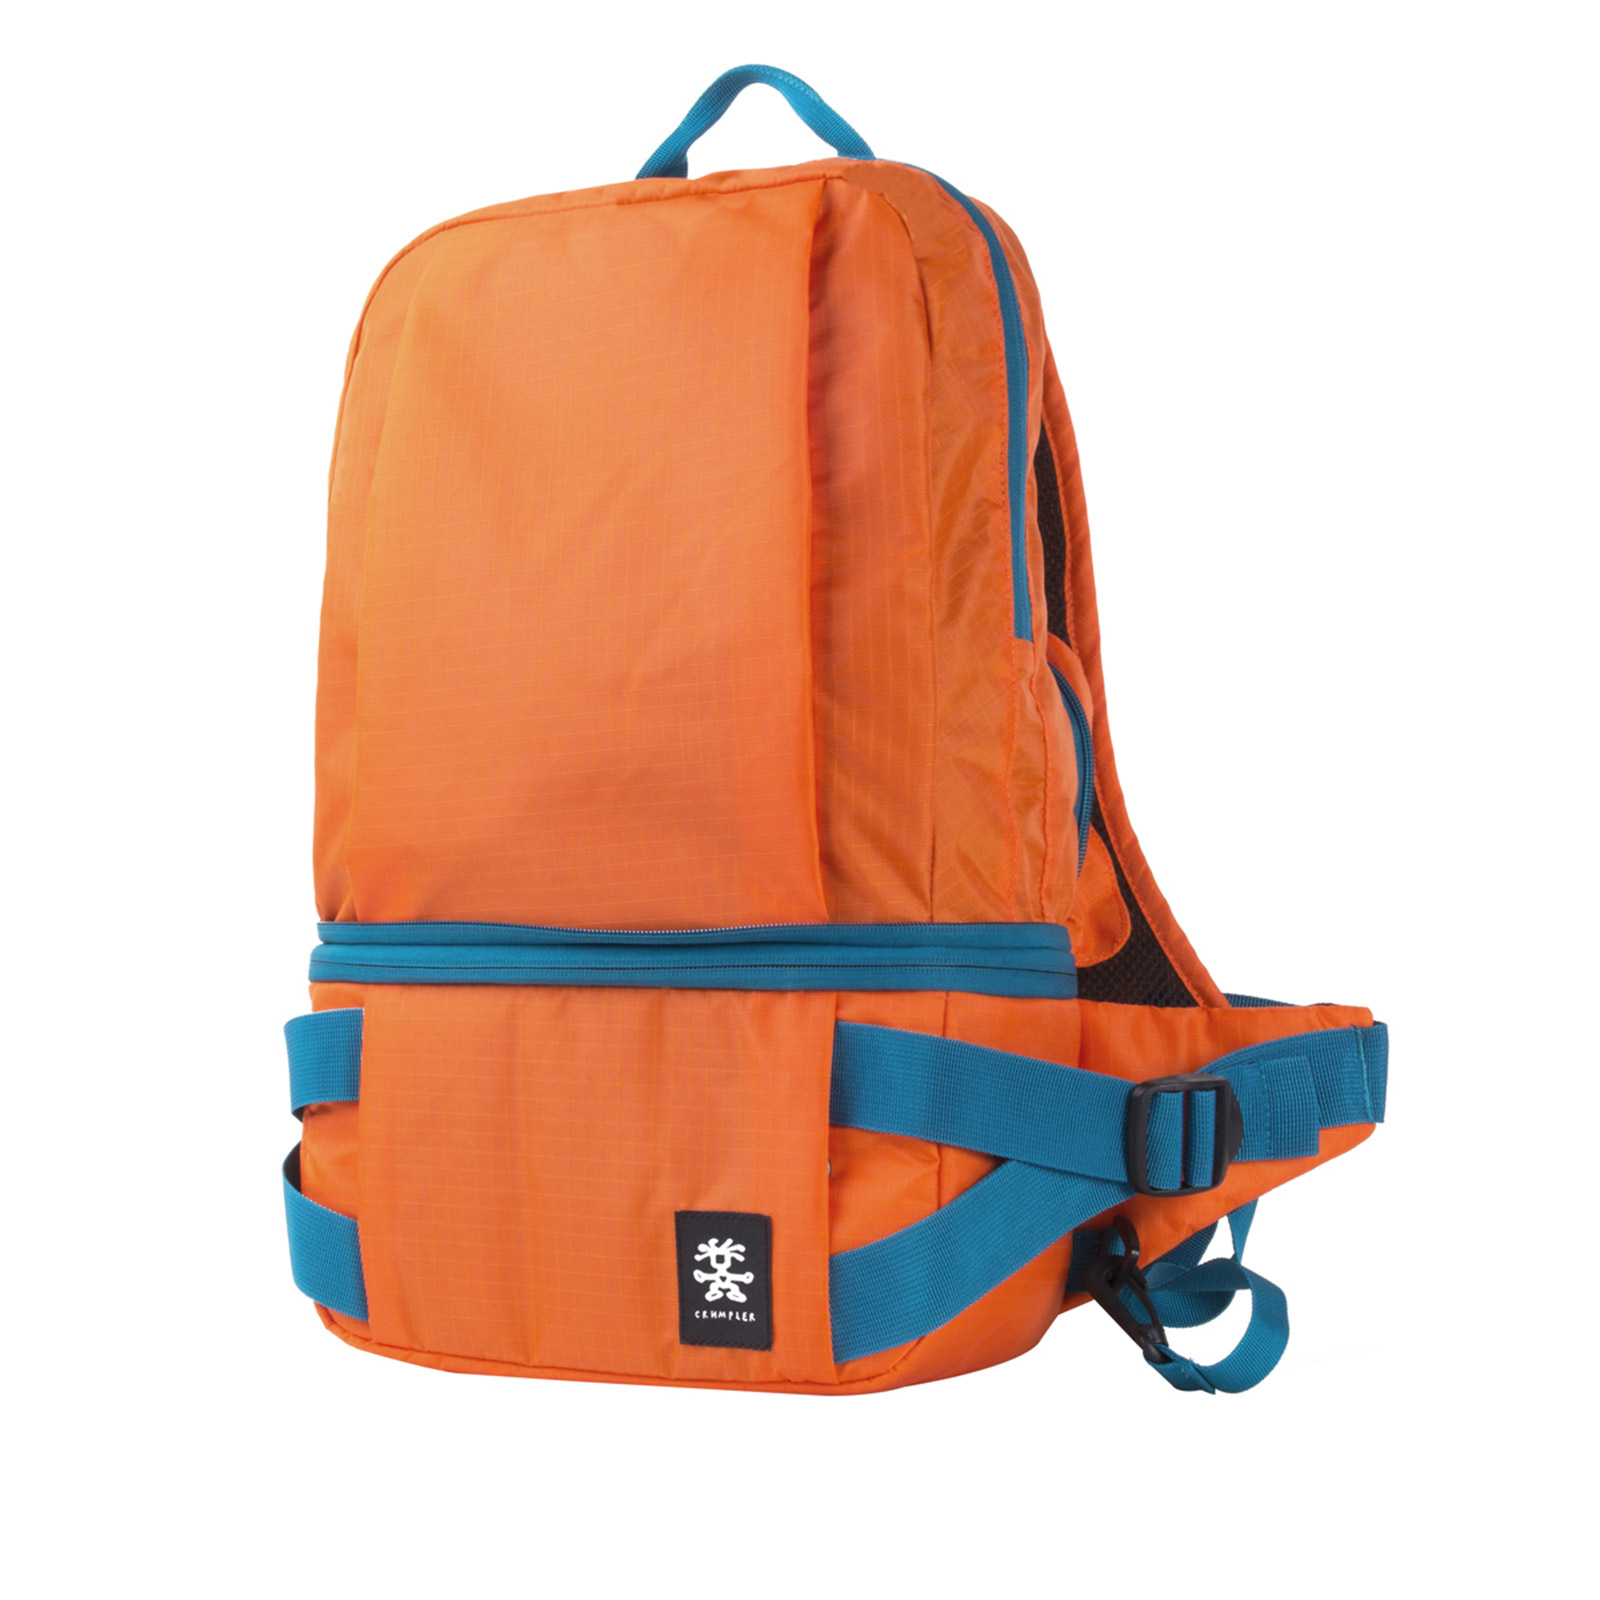 Crumpler Light Delight Foldable Backpack DSLR Camera Bag Rucksack ...